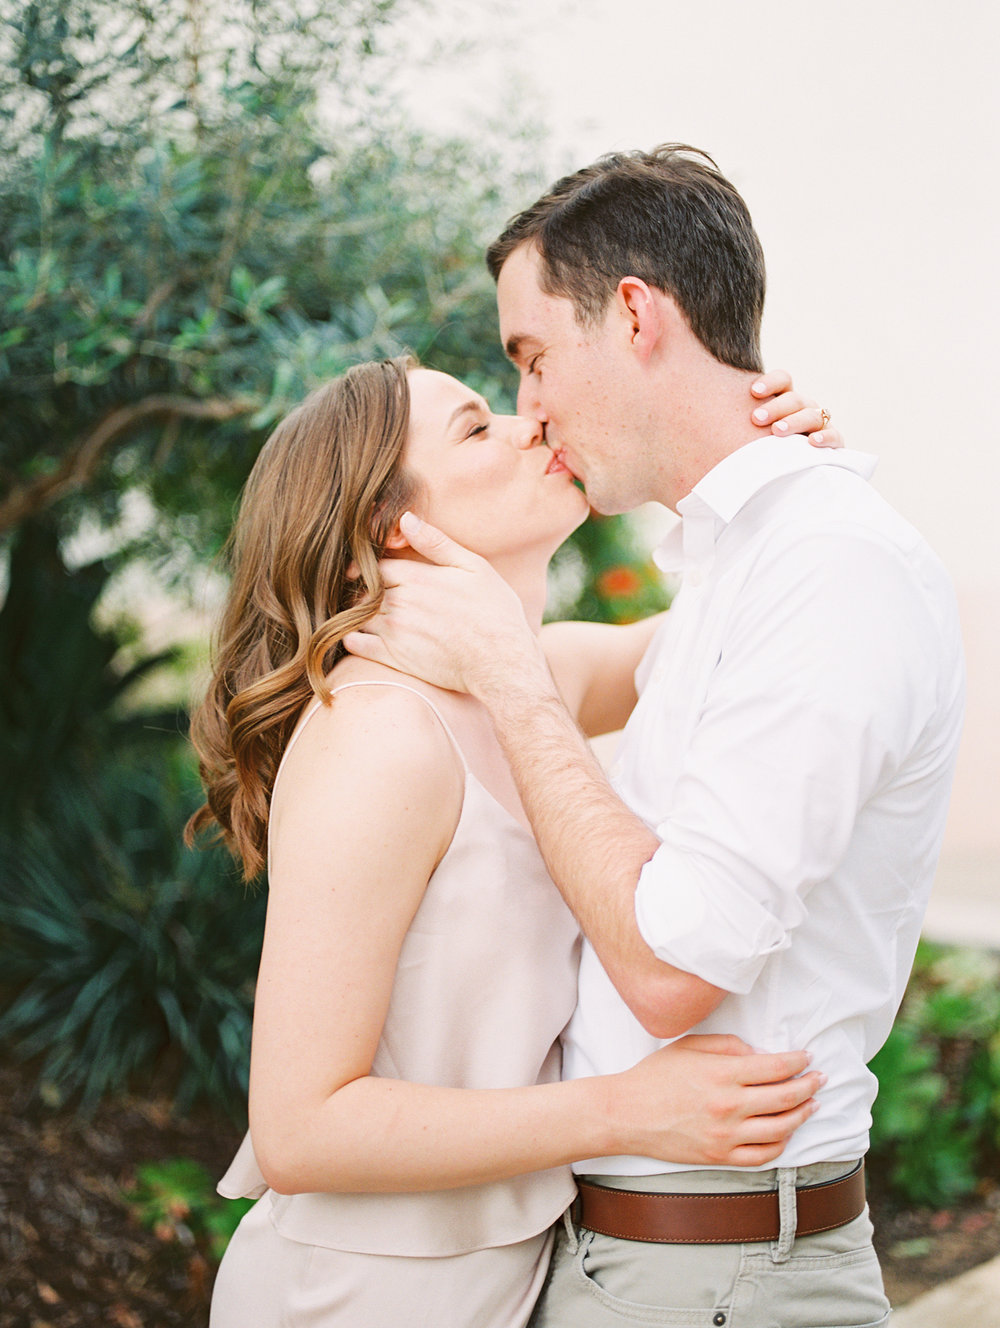 AKP_Santa_Barbara_Courthouse_Engagement_Session_Film_Fine_Art_Photographer-16.jpg